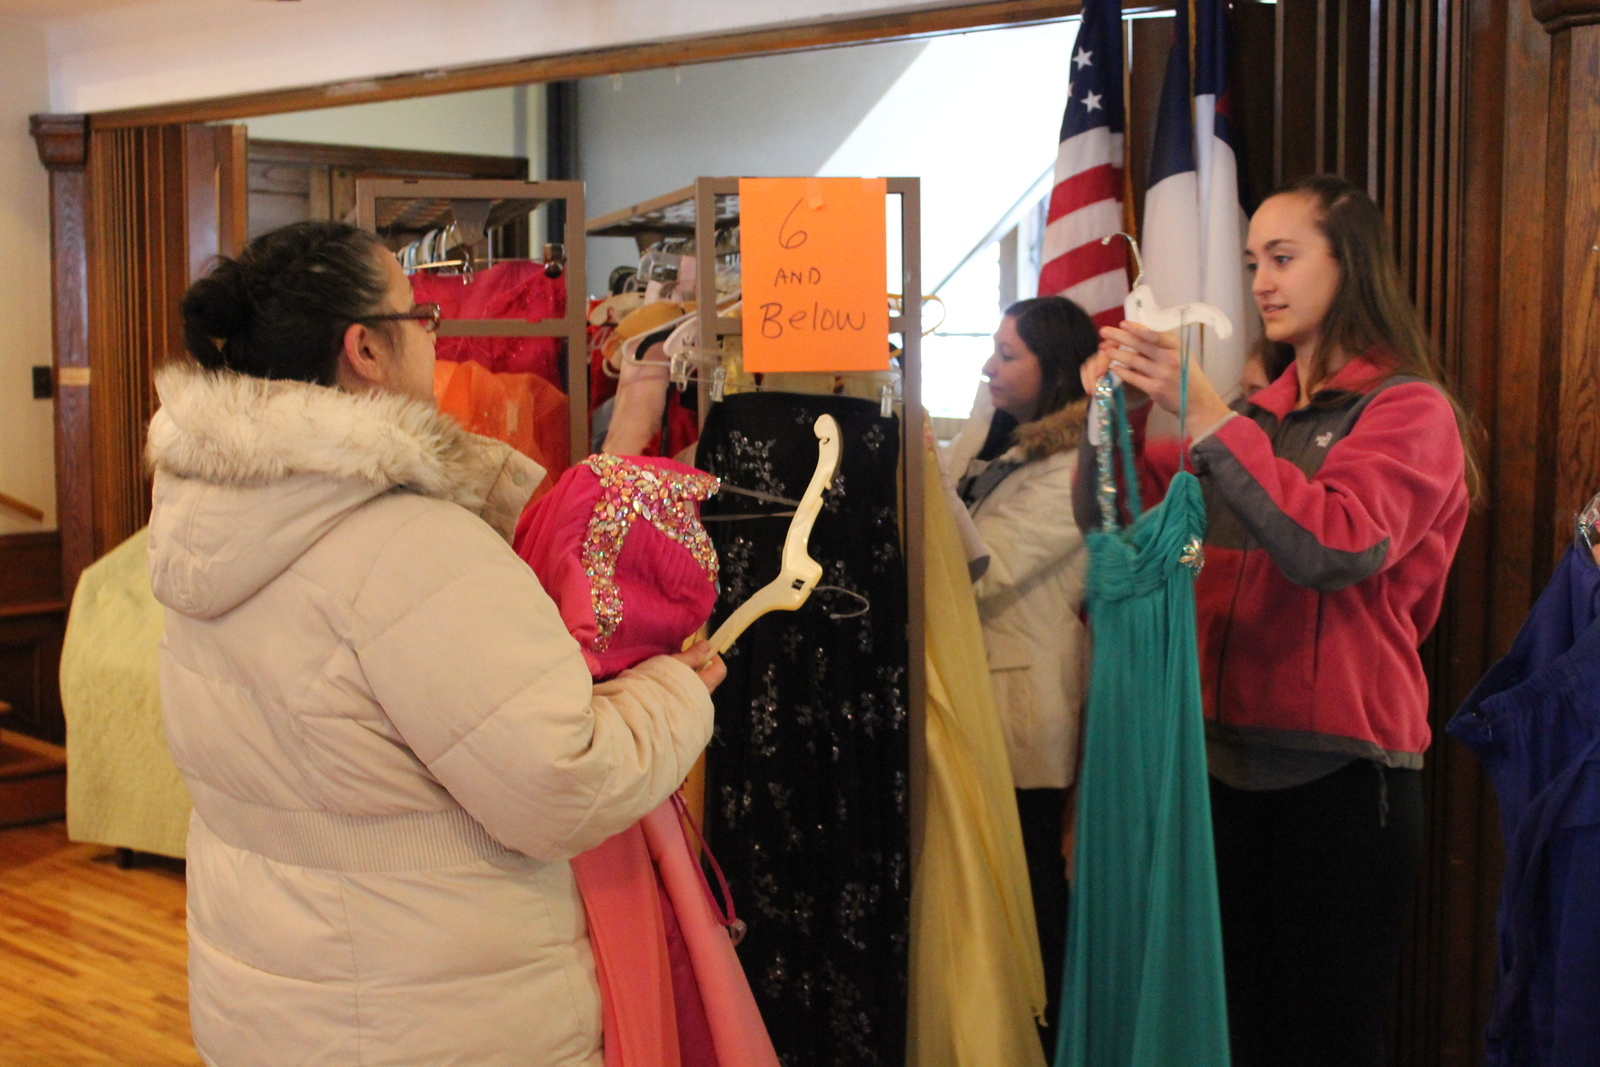 Charles Pritchard - Oneida Daily Dispatch Isabella Scholl, right, and her mother Mary Ann Scholl look through dresses at the First Presbyterian Church's Prom Dress Giveaway in Oneida on Saturday, Feb. 10, 2018.